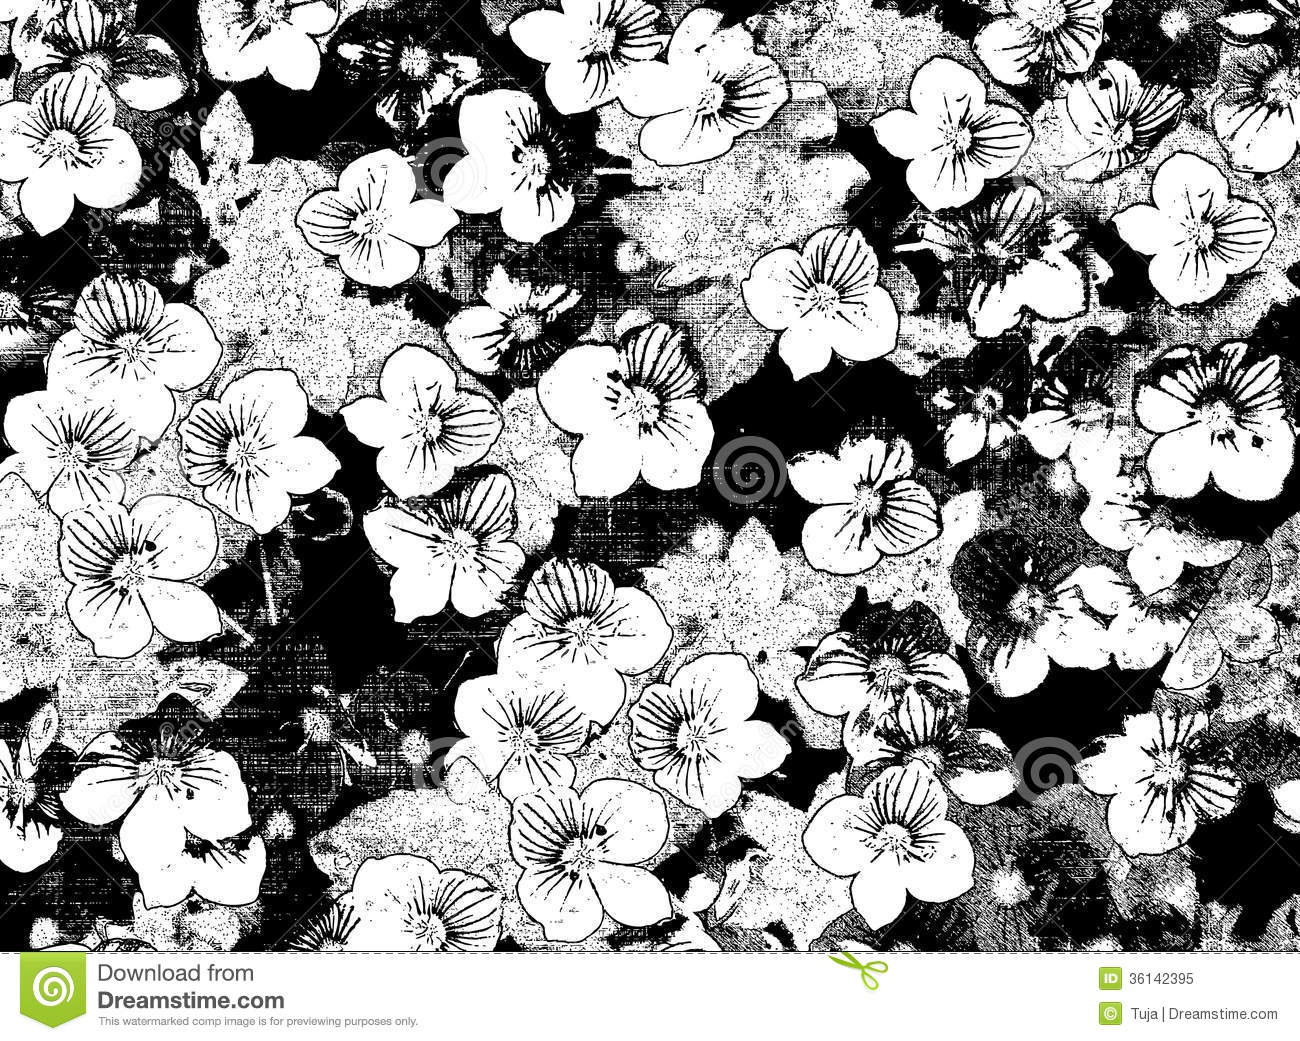 Black and white flower backgrounds 6 high resolution wallpaper black and white flower backgrounds 6 high resolution wallpaper mightylinksfo